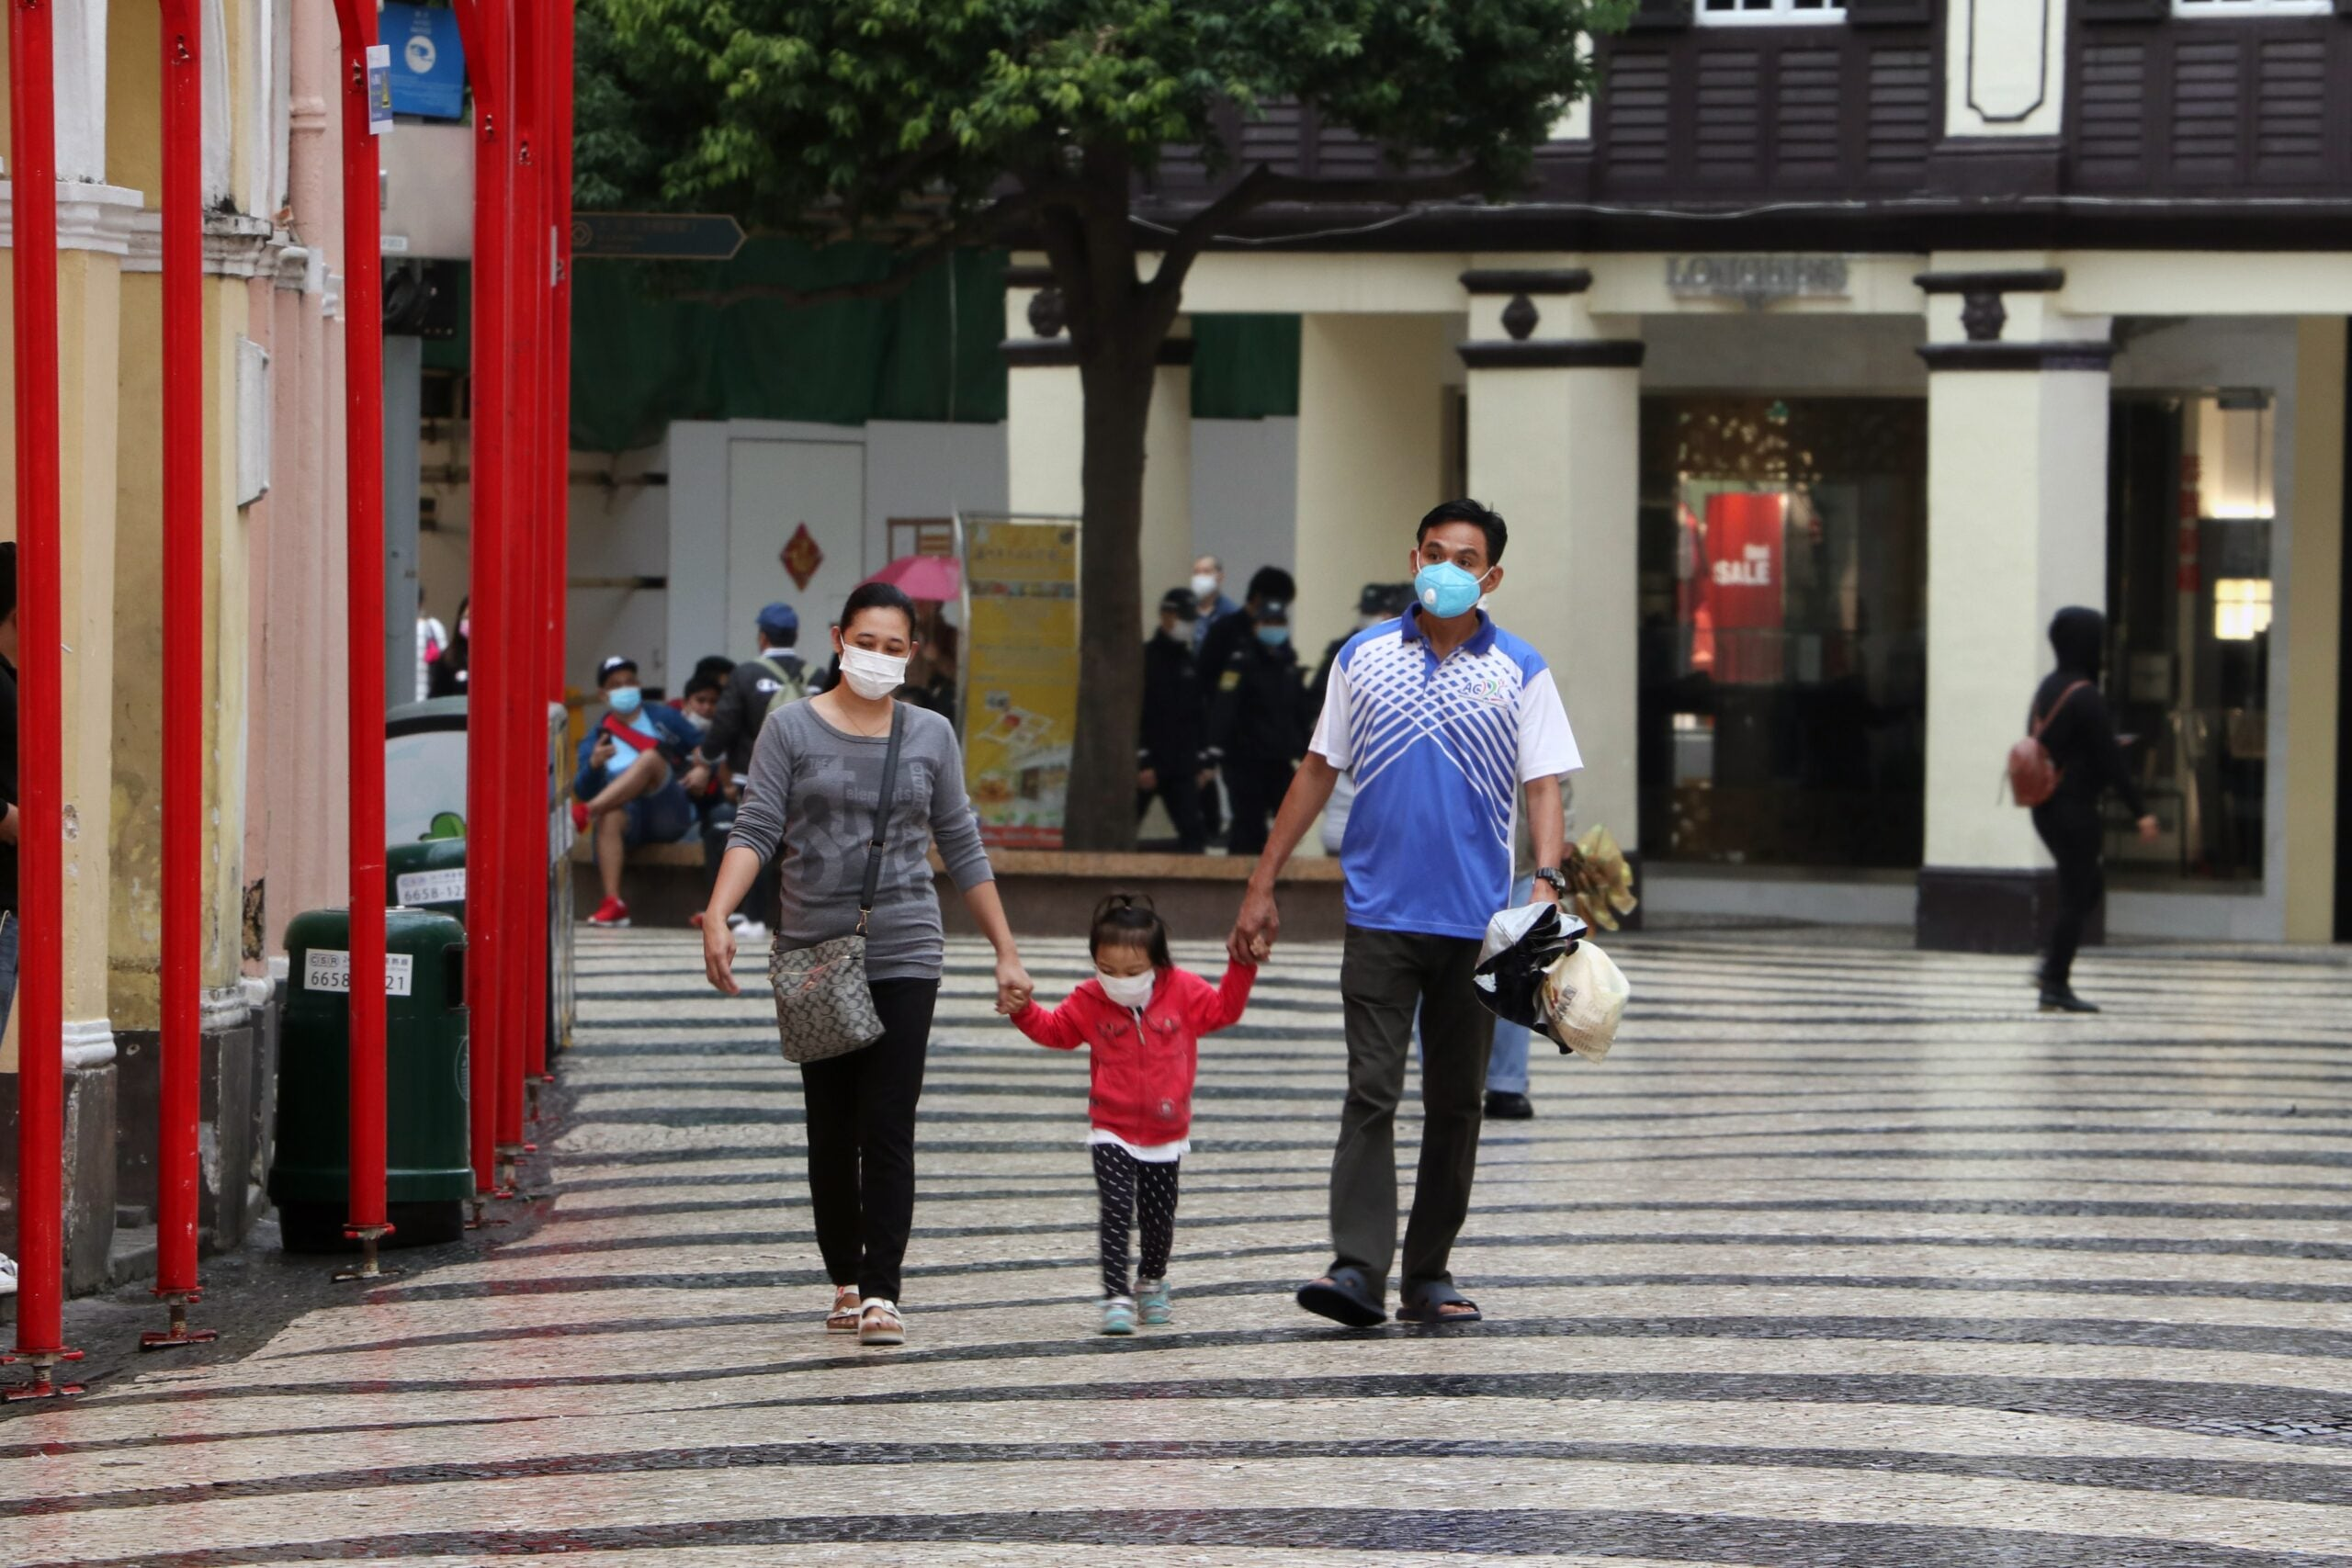 Two adults and a child walk wearing masks.